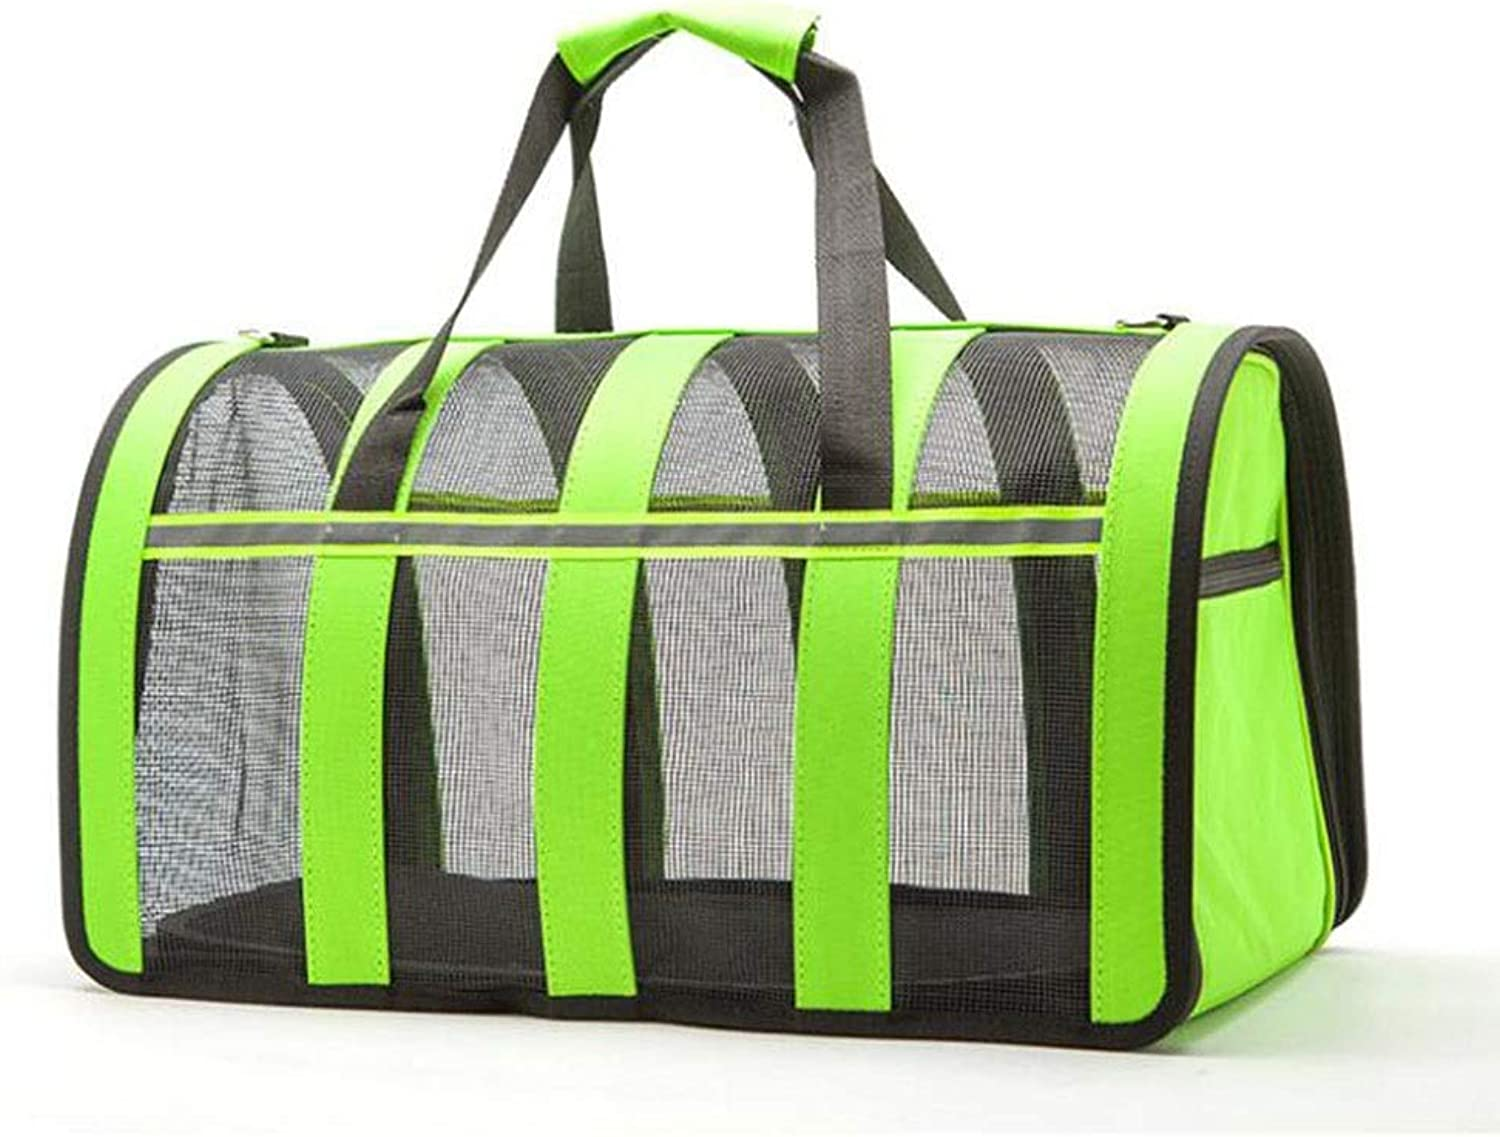 Pet Bag Small Pet Outing Bag Portable Adjustable Tote Bag Breathable Tote Bag (color   Fluorescent Green, Size   43  24  25cm)